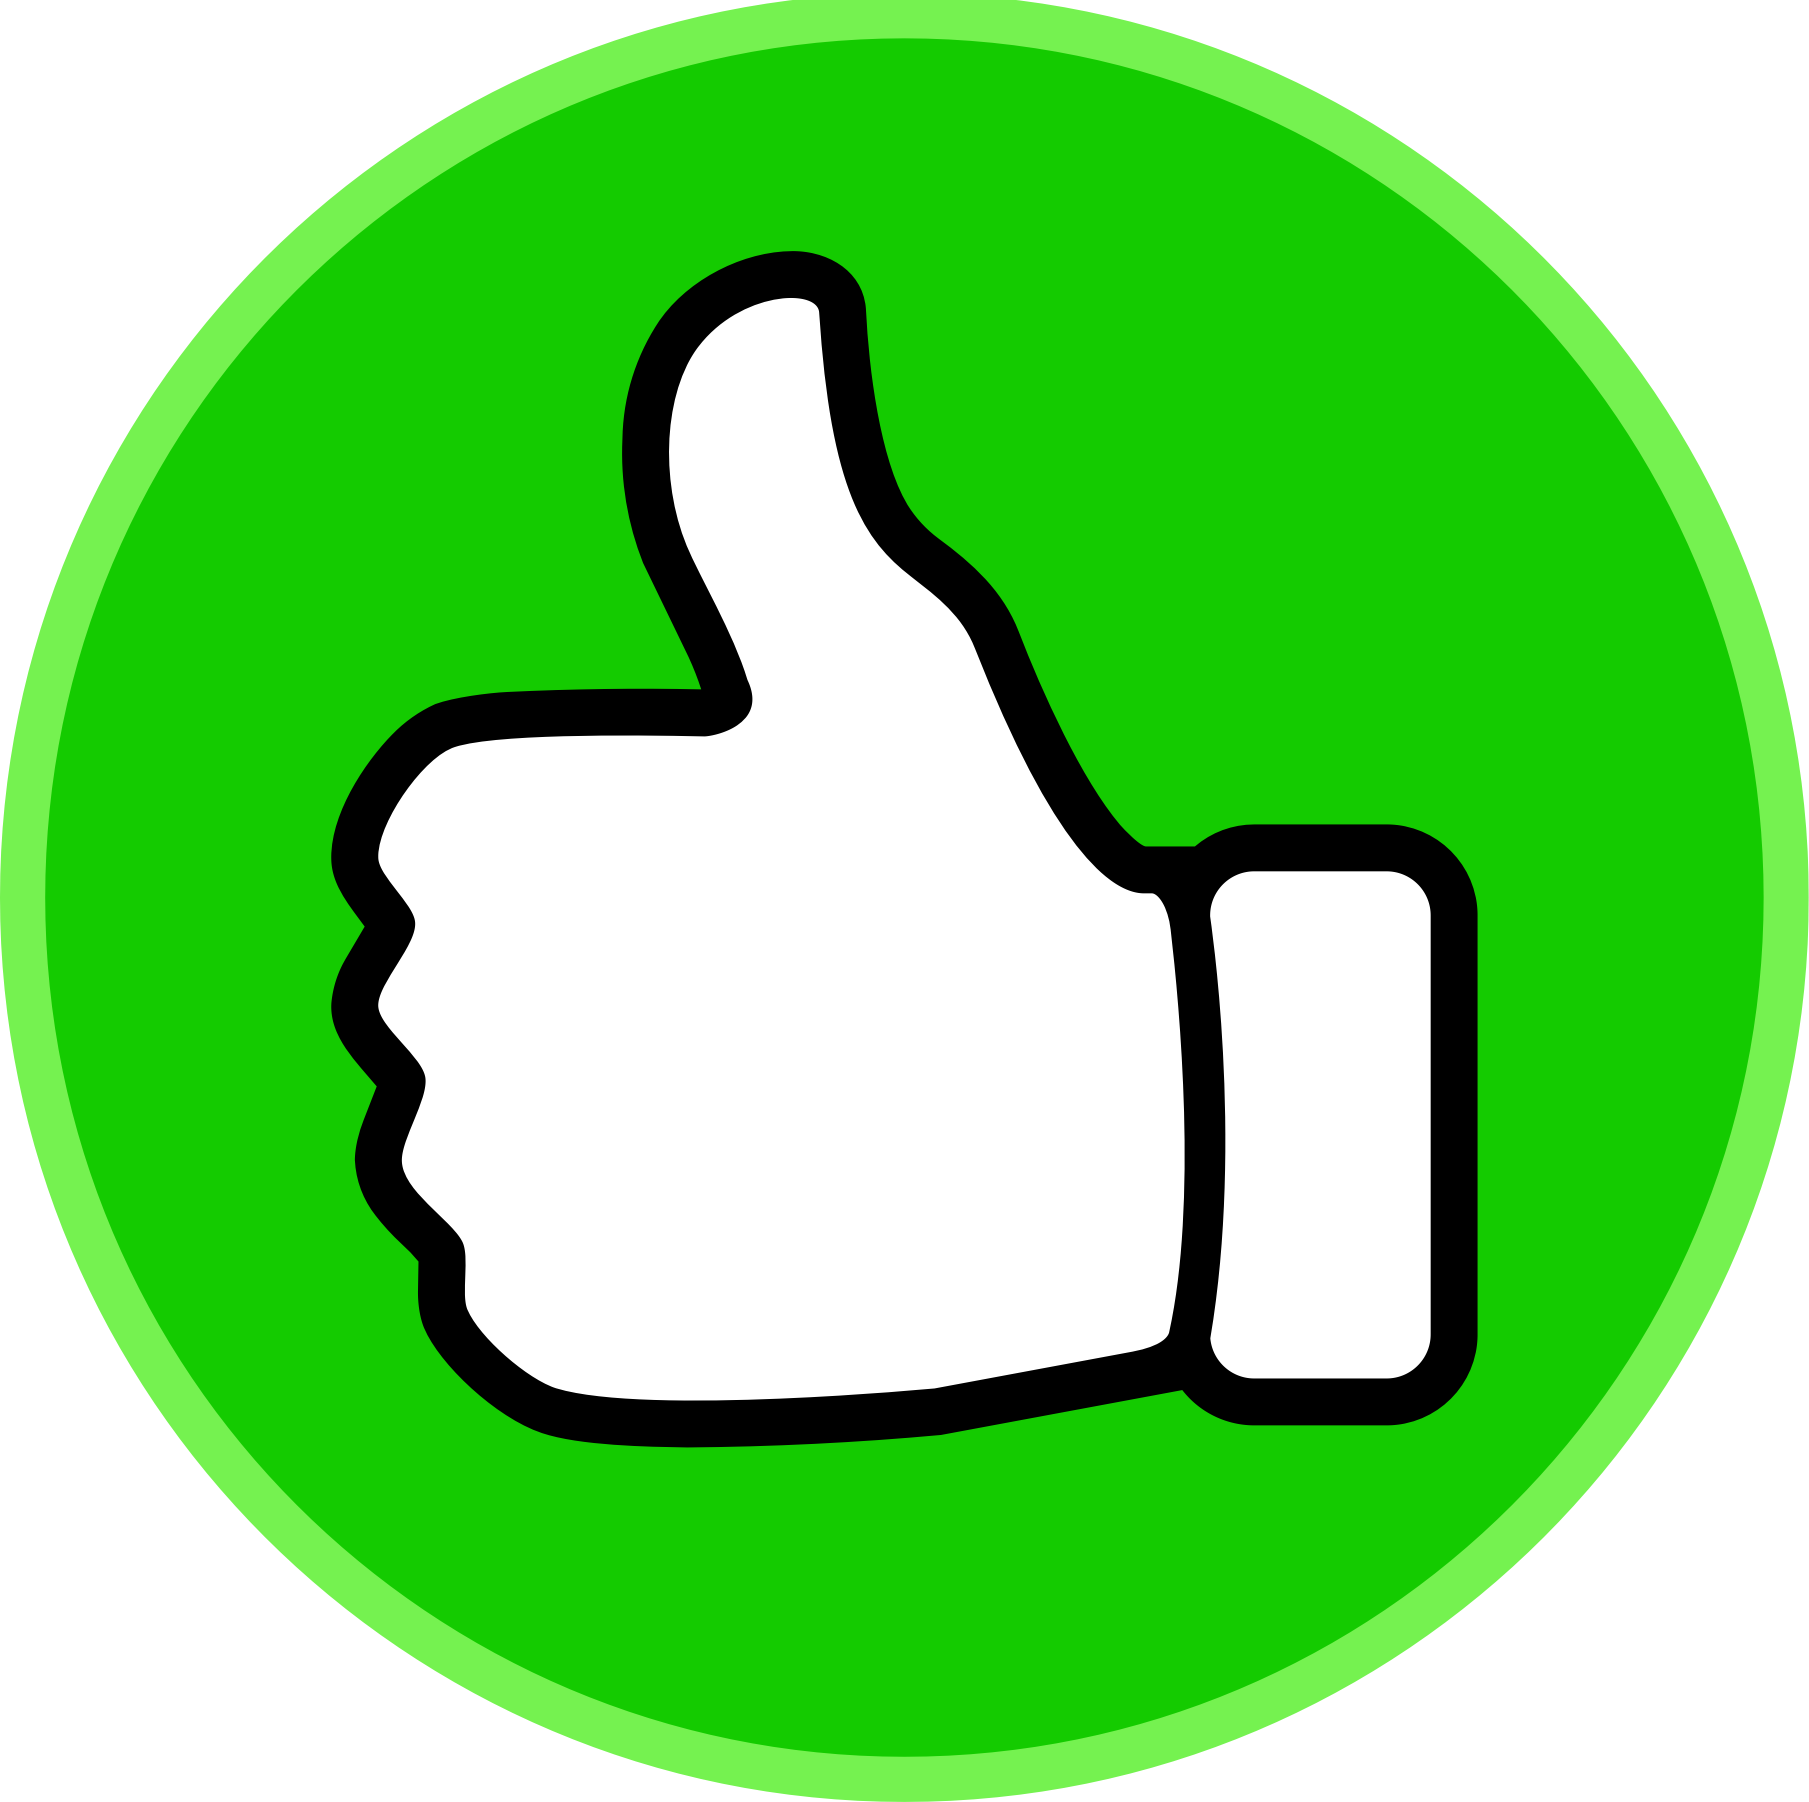 1809x1802 Thumbs Up Clipart